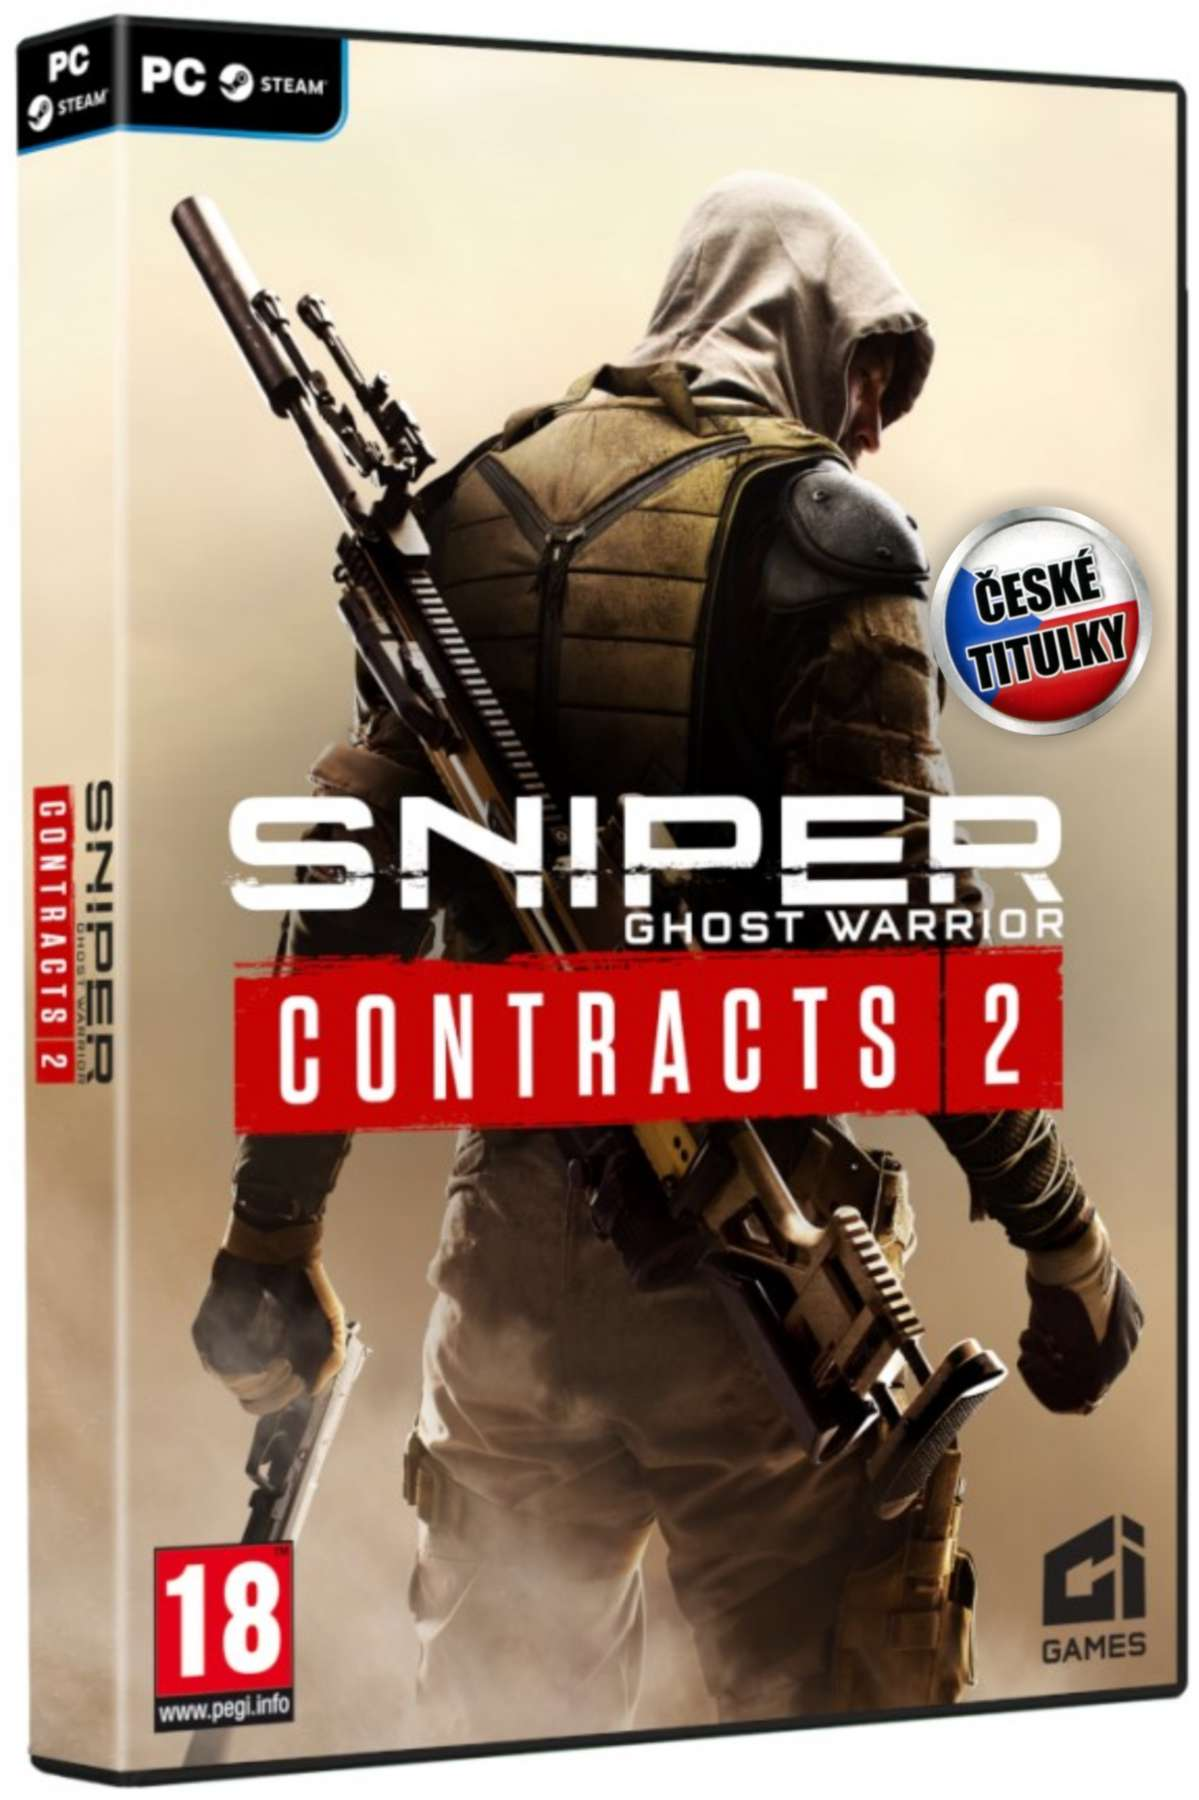 Sniper: Ghost Warrior Contracts 2 - PC